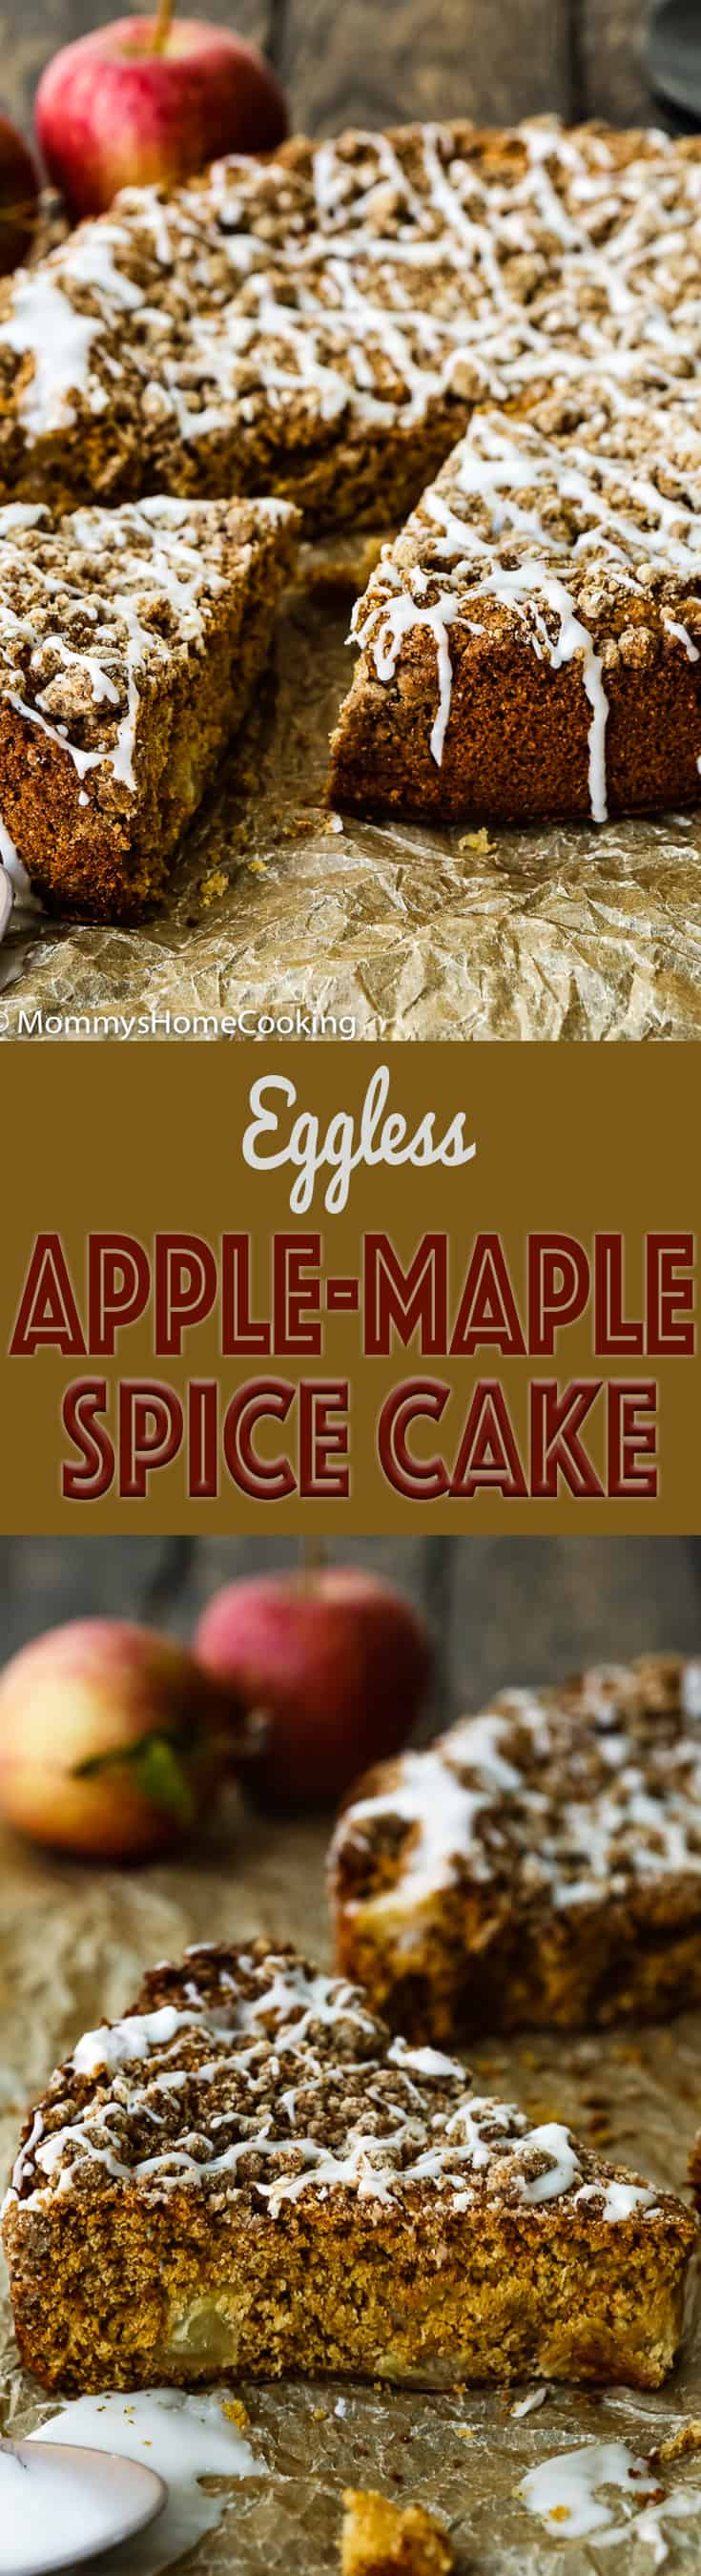 Get an A+ on kitchen duty with this Eggless Apple Maple Spice Cake!! It's really moist, tender, and tasty. Perfect for dessert or breakfast. https://mommyshomecooking.com